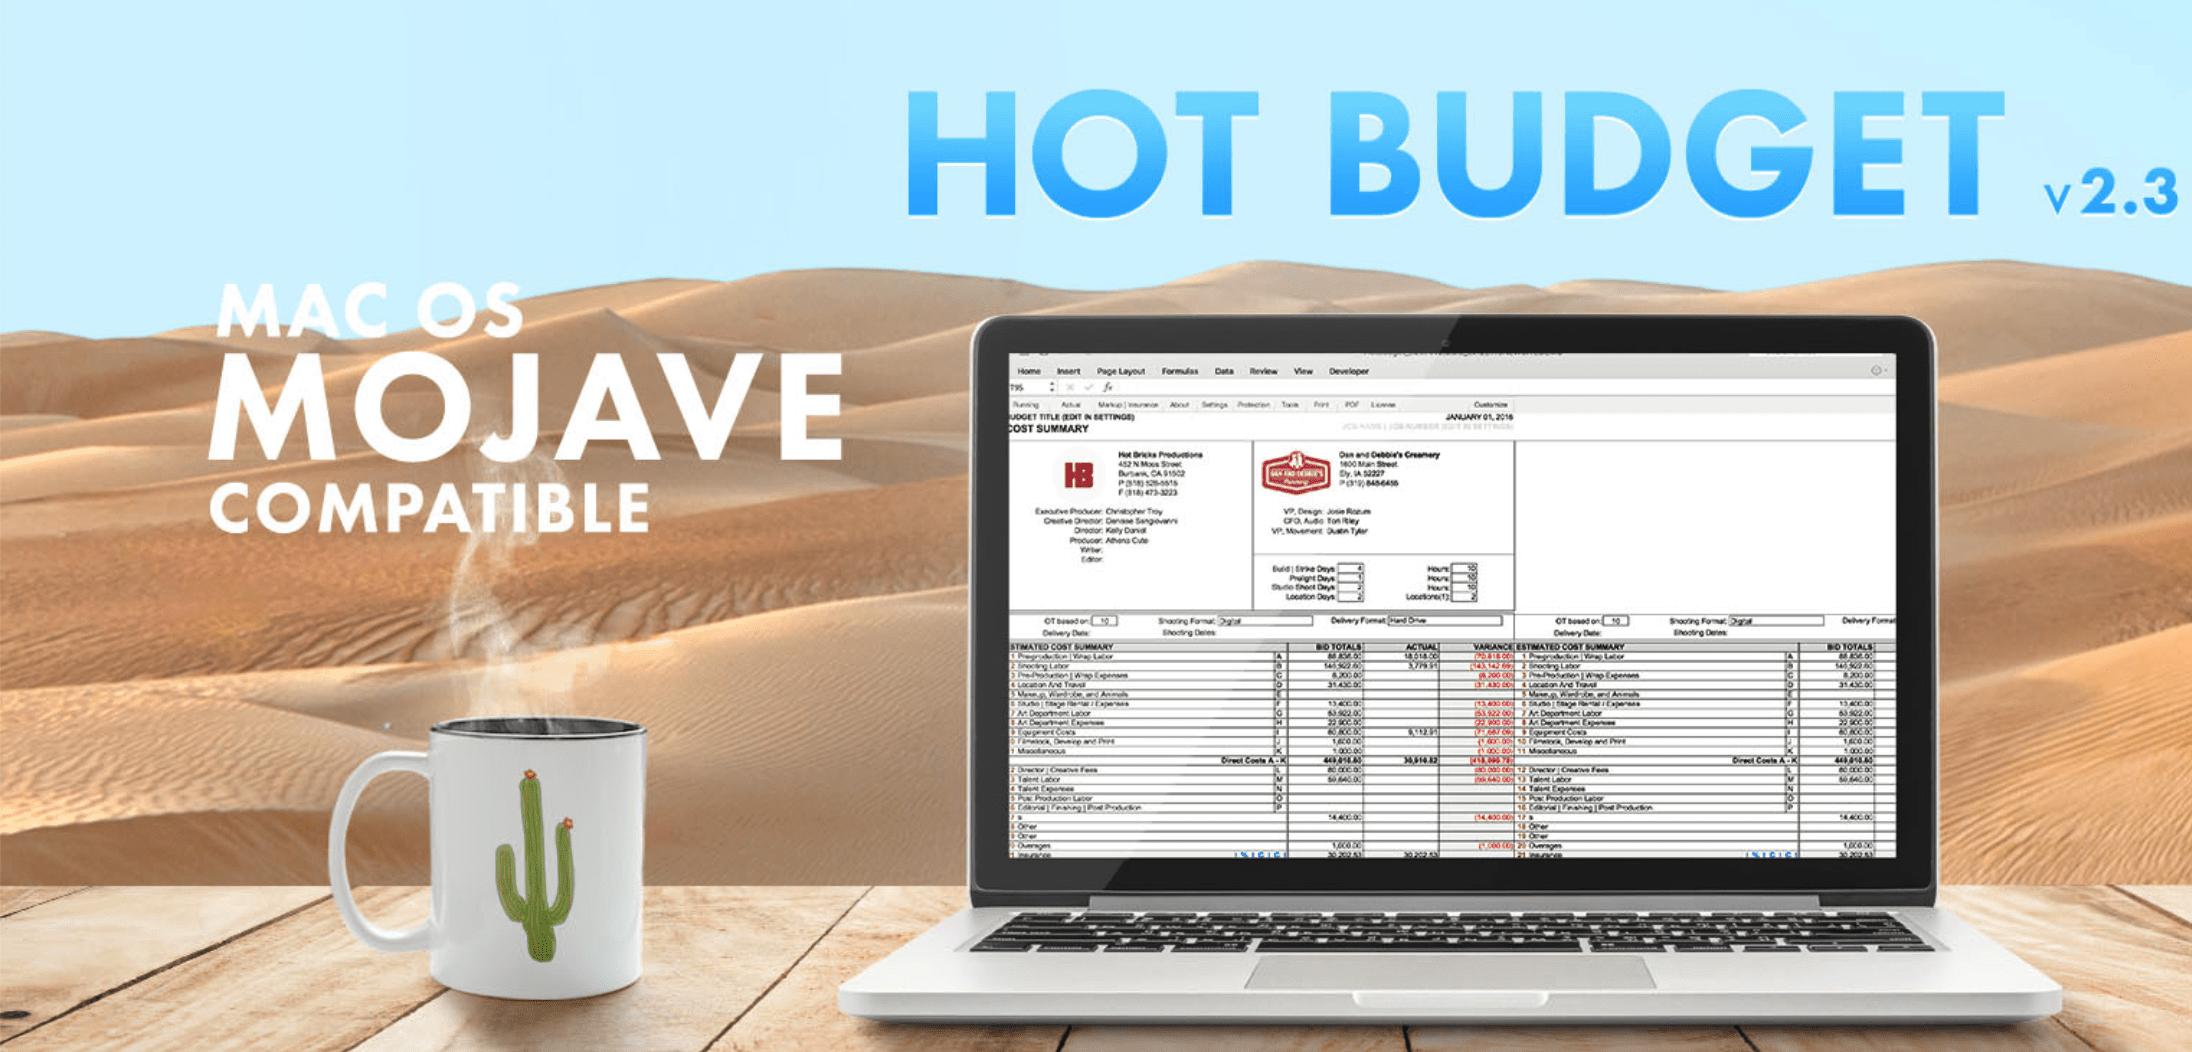 Hot Budget is cheaper when purchased with Hot Bricks - Best Film Budgeting Software 2020.